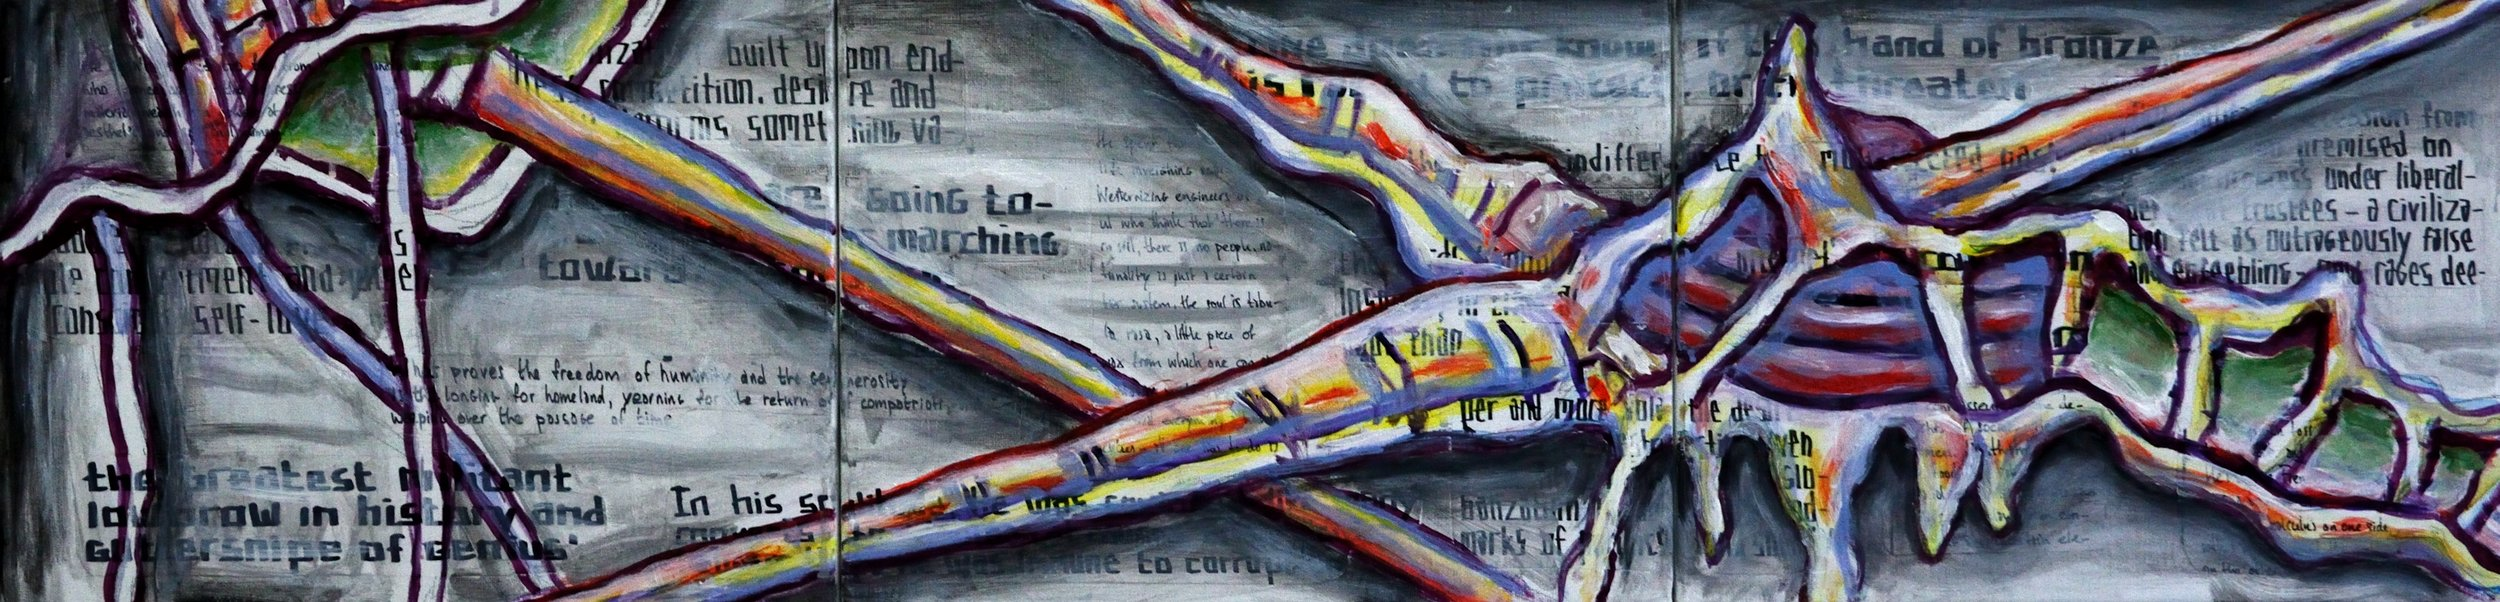 Triptych BZ, That Hand of Bronze was Immune to Corruption, acrylic, collage and marker on canvas, 30x120cm